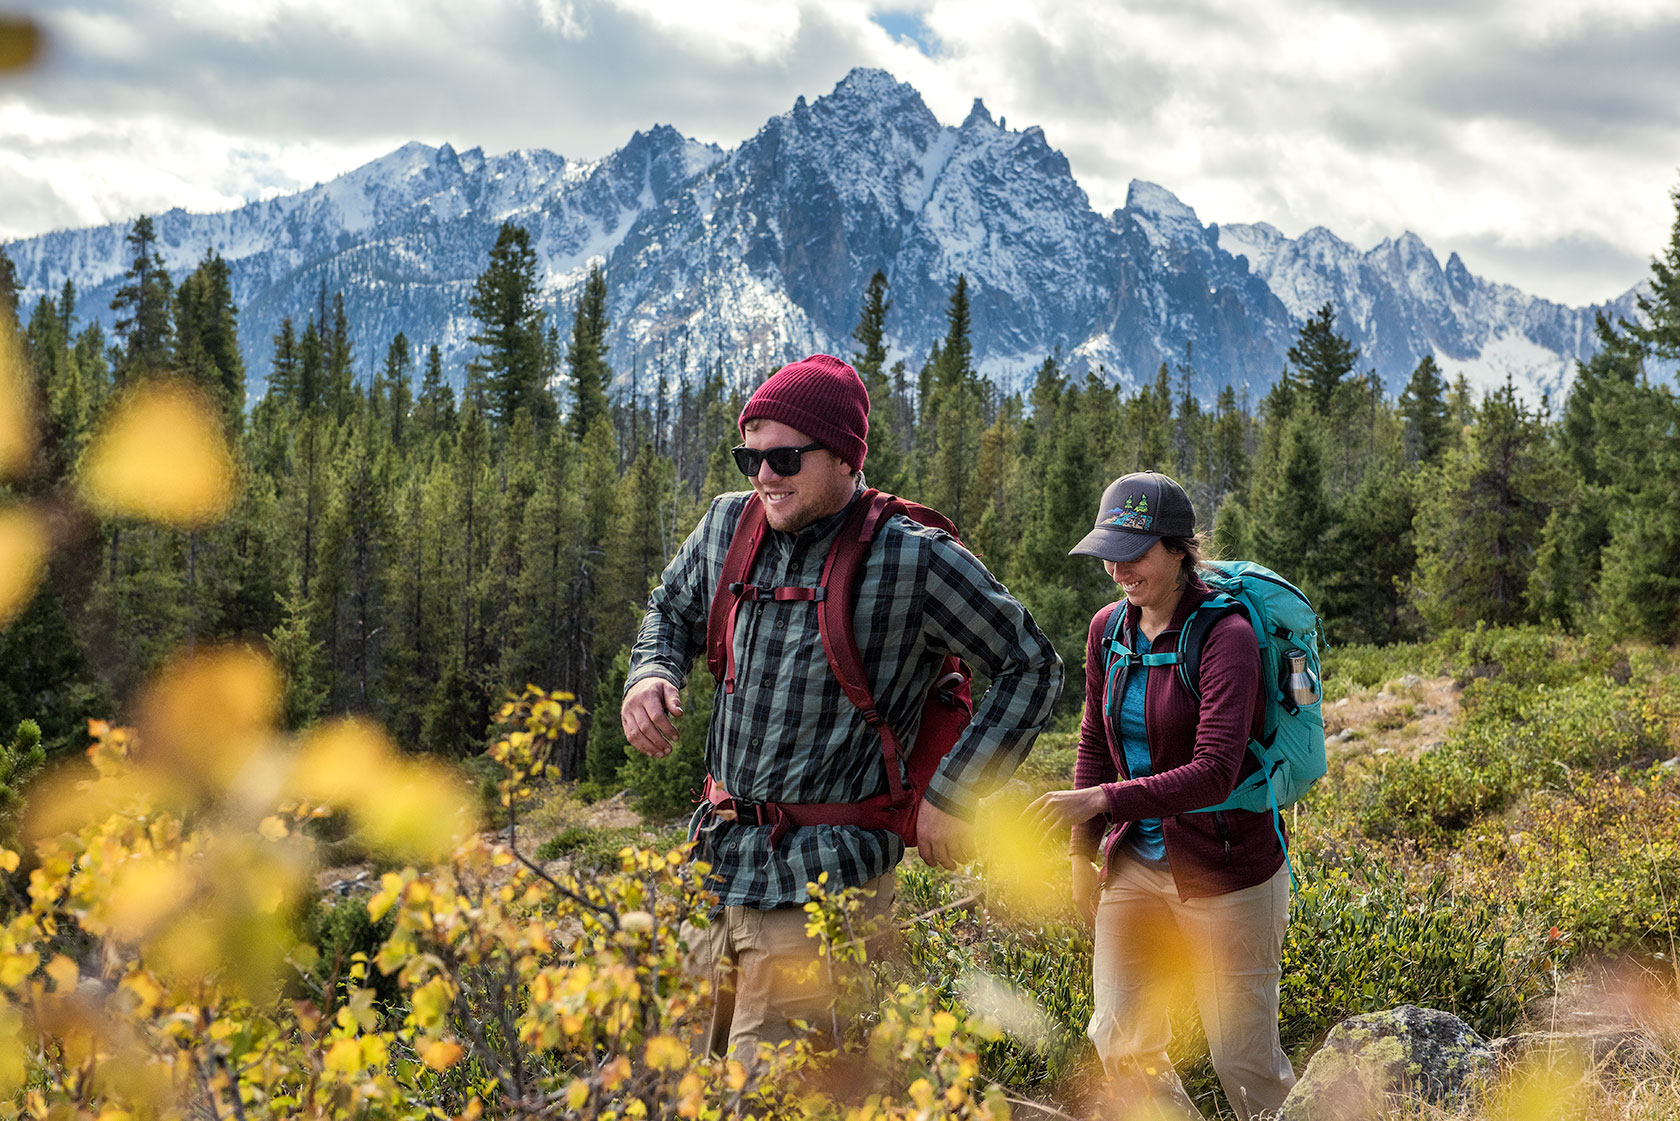 austin-trigg-patagonia-sawtooth-hiking-bench-lake-laughing-advenure-wilderness-forest-idaho-outside-lifestyle-day-fall-weather-mountains-woods.jpg